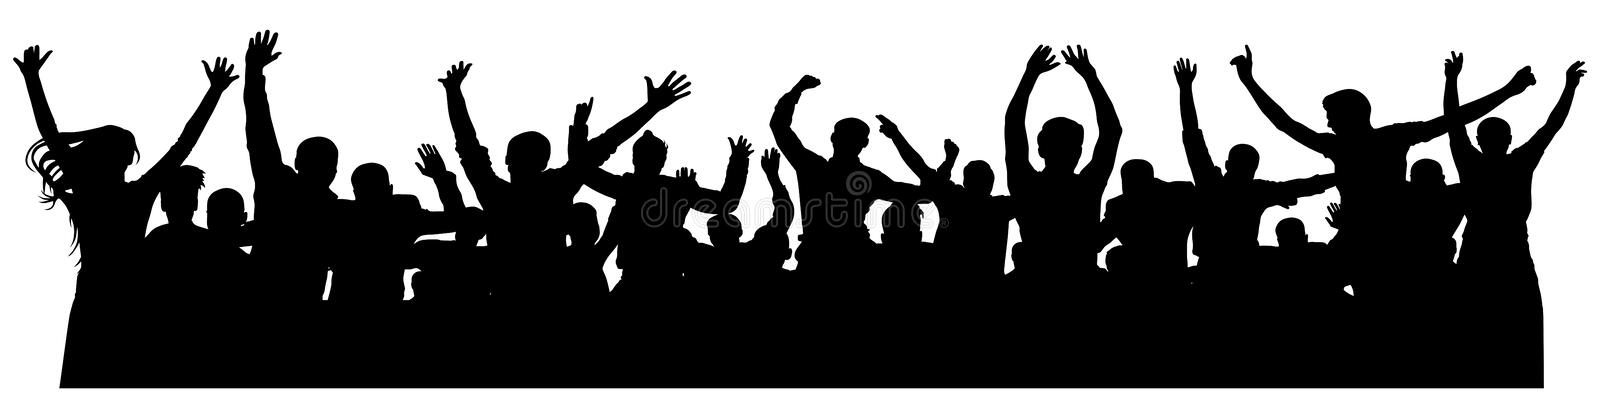 Crowd cheerful people silhouette. Joyful mob. Happy group of young people dancing at musical party, concert, disco. stock illustration